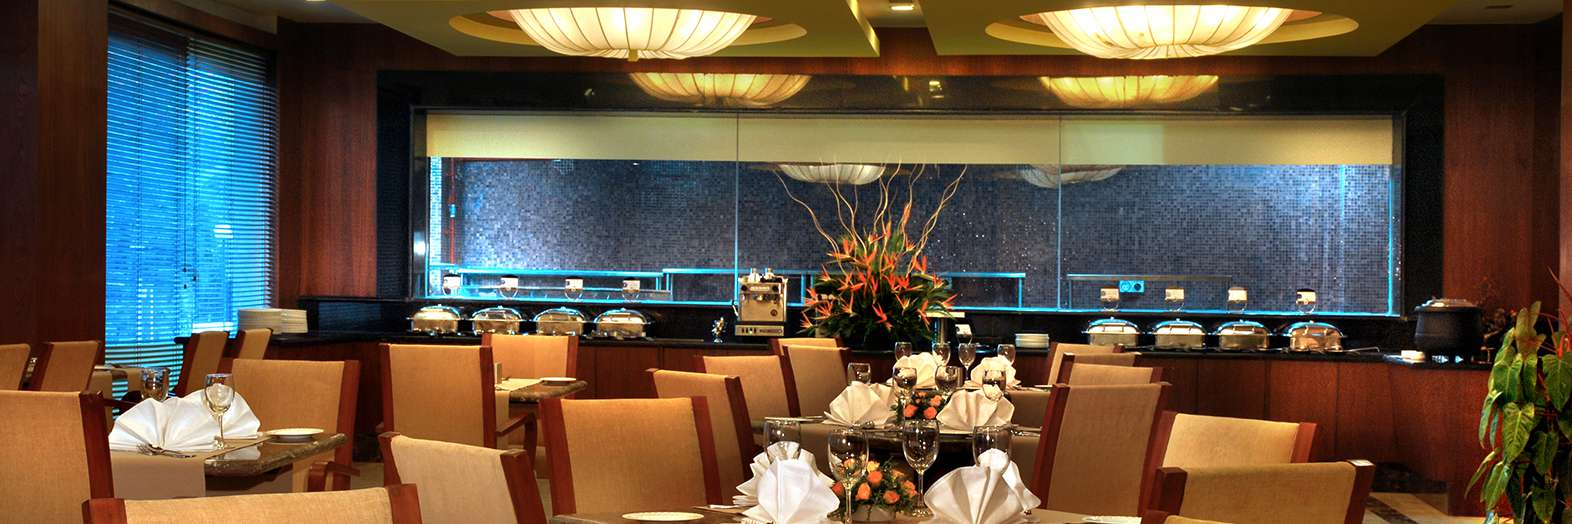 Fortune Select JP Cosmos – Bengaluru Hotels Dining